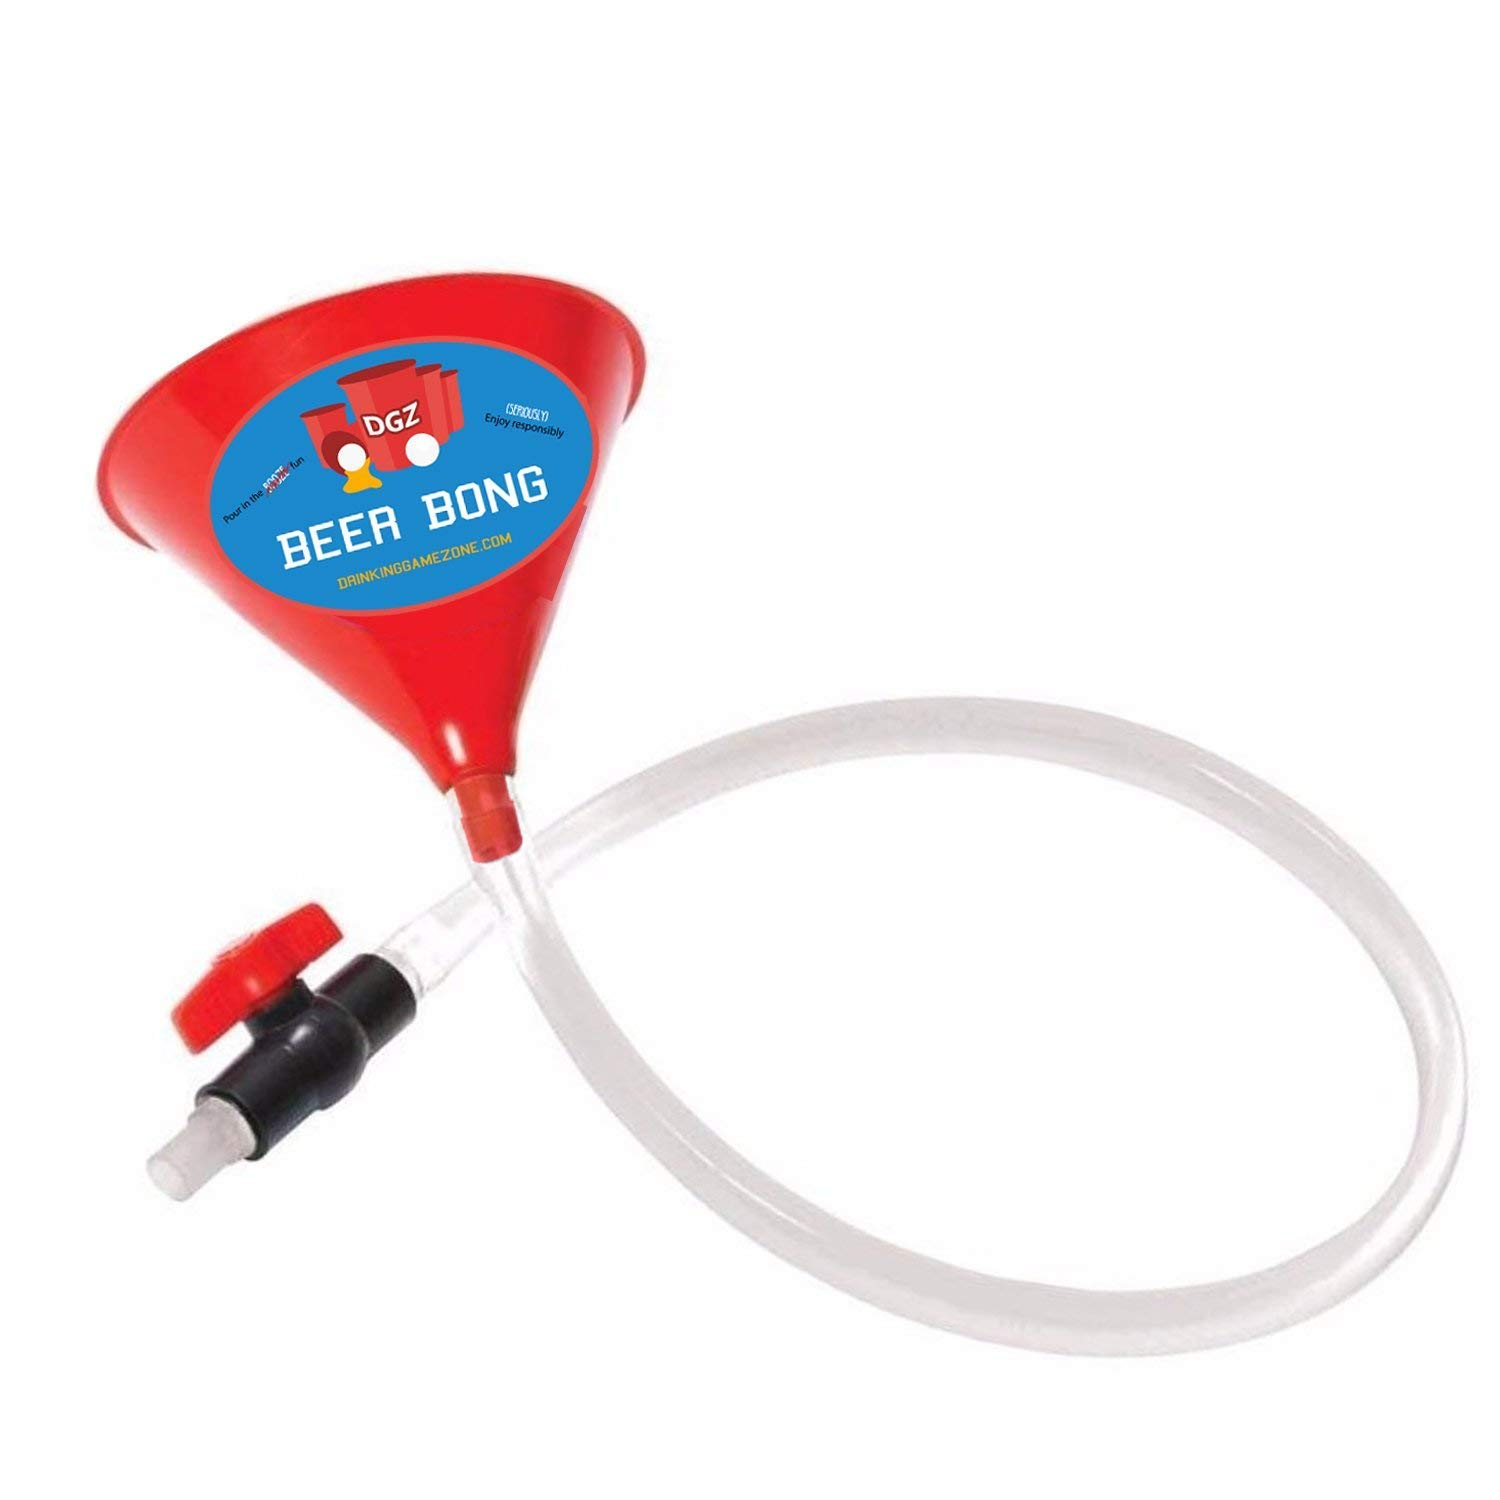 Beer Bong Funnel With Valve - 2.5 Foot Plastic College Party Alcohol Tube Hose Chugging Device - Perfect for Parties, Pregames, Beach Week, University Student Gag Gift - By Drinking Game Zone